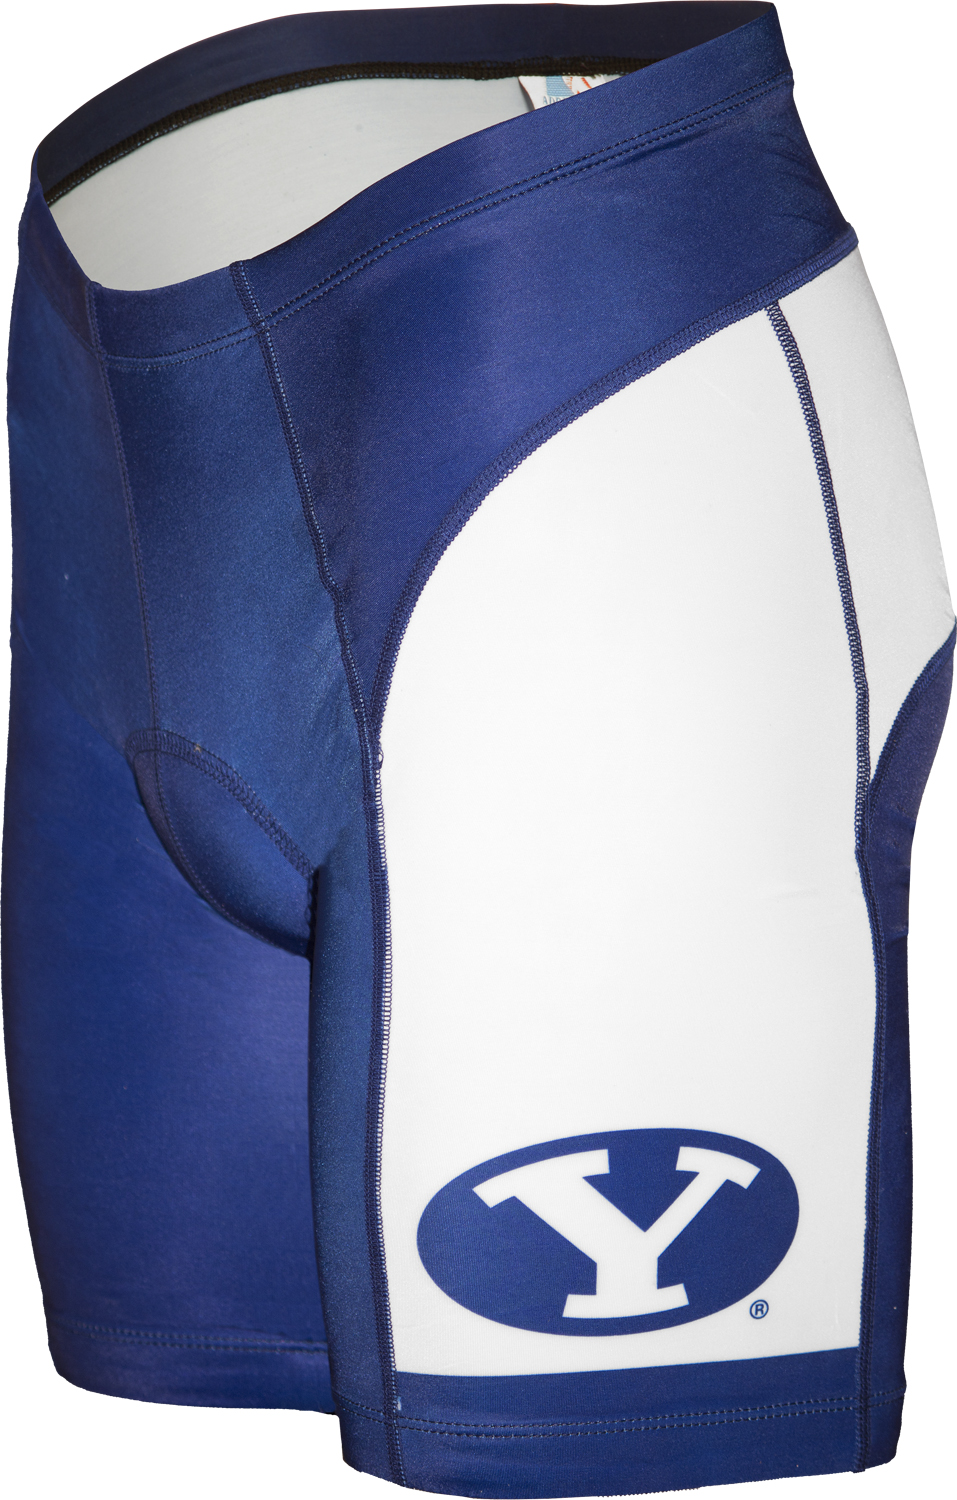 Brigham Young (BYU) University Cougars Cycling Shorts